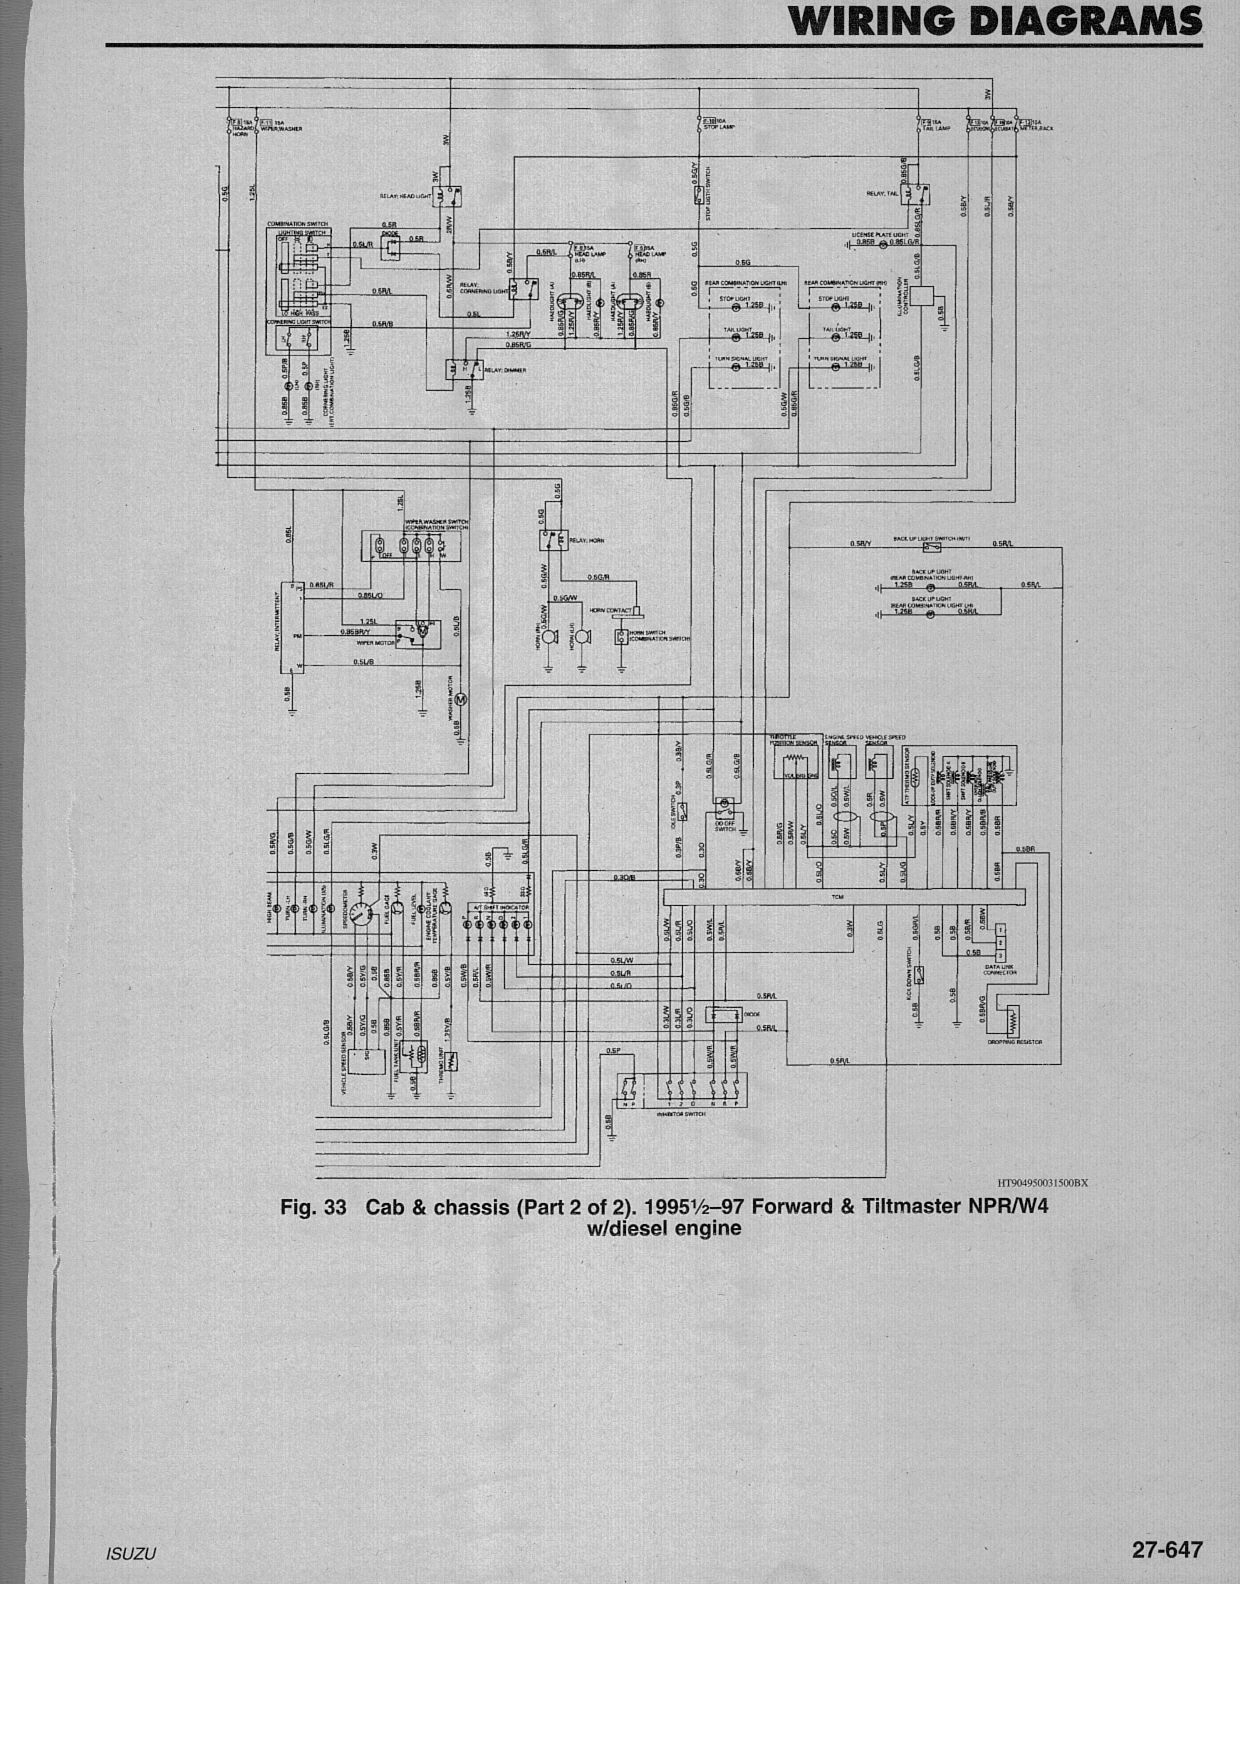 Npr Wiring Diagram | Manual E-Books - 2006 Isuzu Npr Wiring Diagram